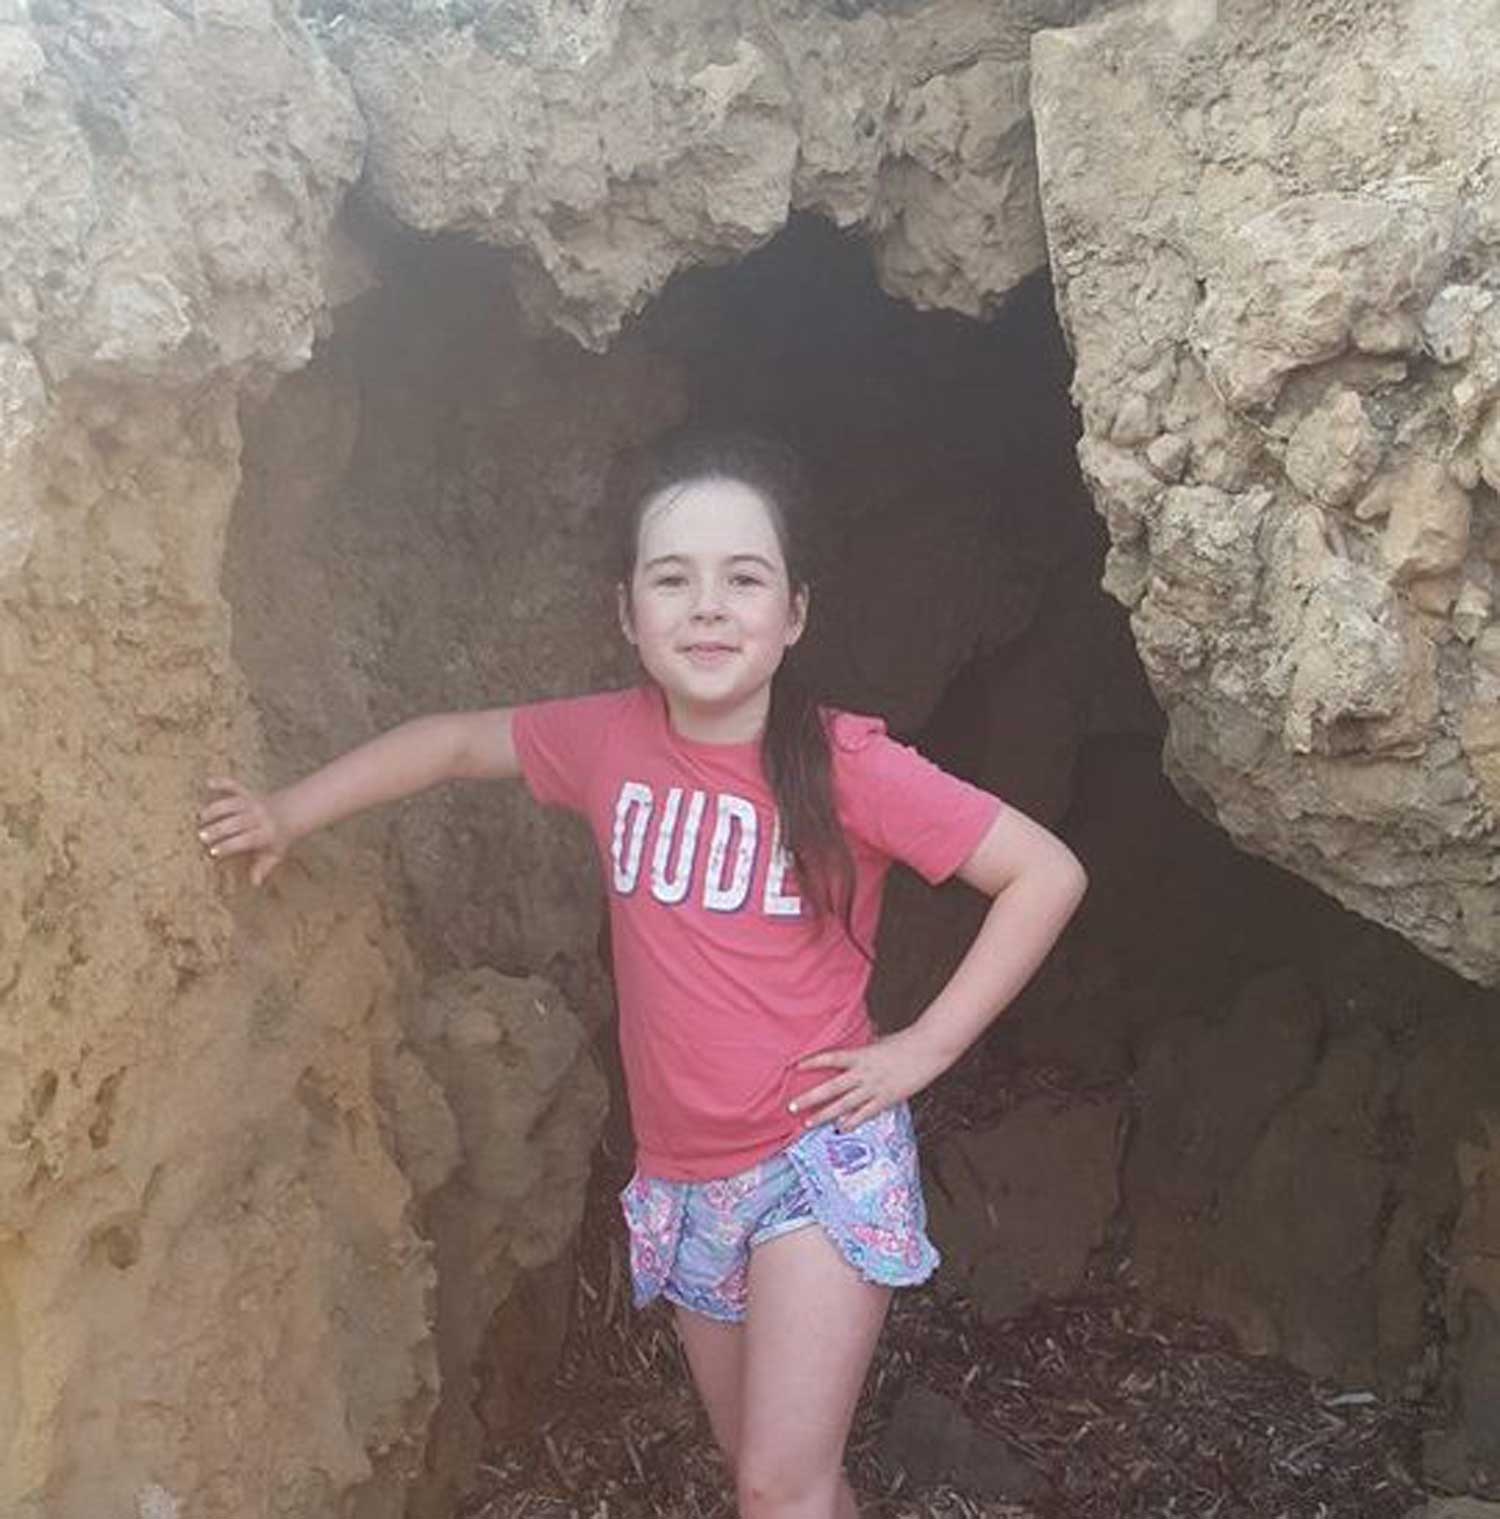 Tookii things to do with kids in a cave one of the outdoor activities for kids